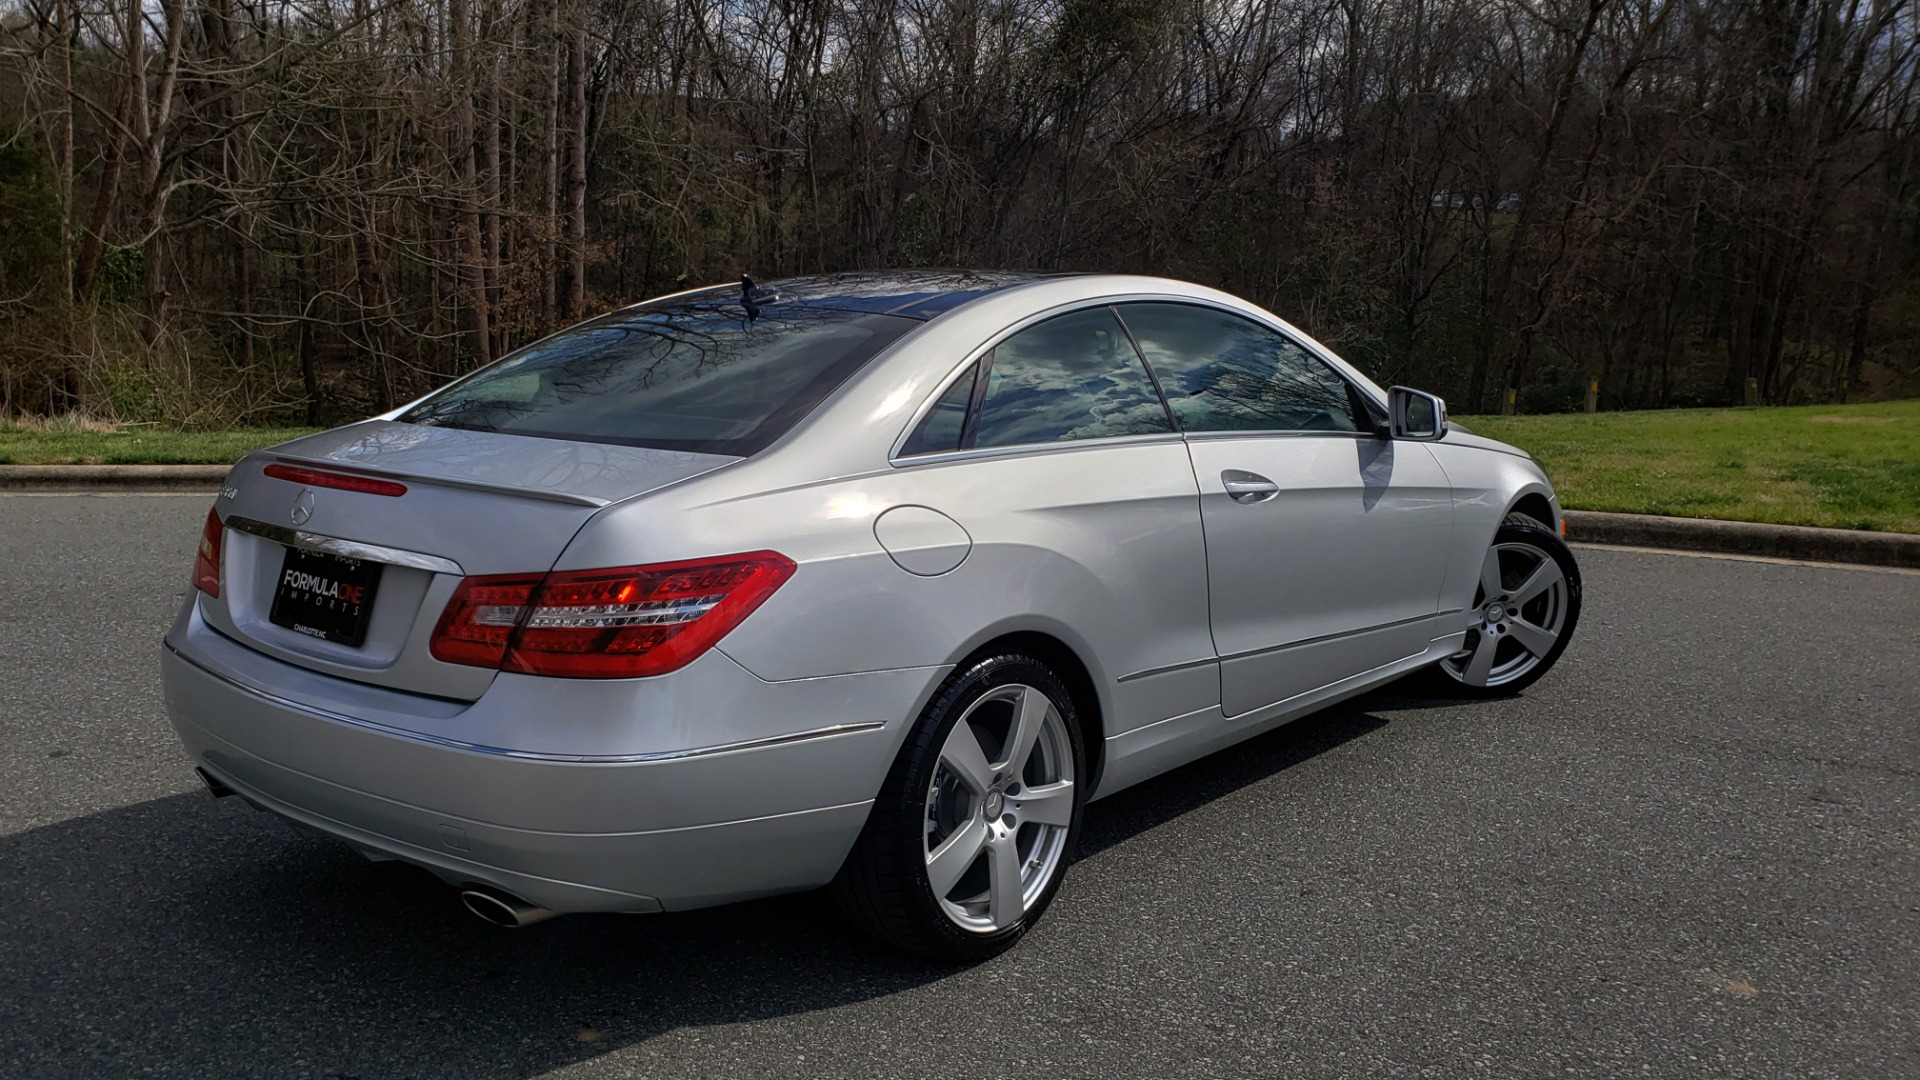 Used 2013 Mercedes-Benz E-CLASS E 350 COUPE PREM / NAV / PANO-ROFF / KEYLESS-GO / REARVIEW for sale Sold at Formula Imports in Charlotte NC 28227 7